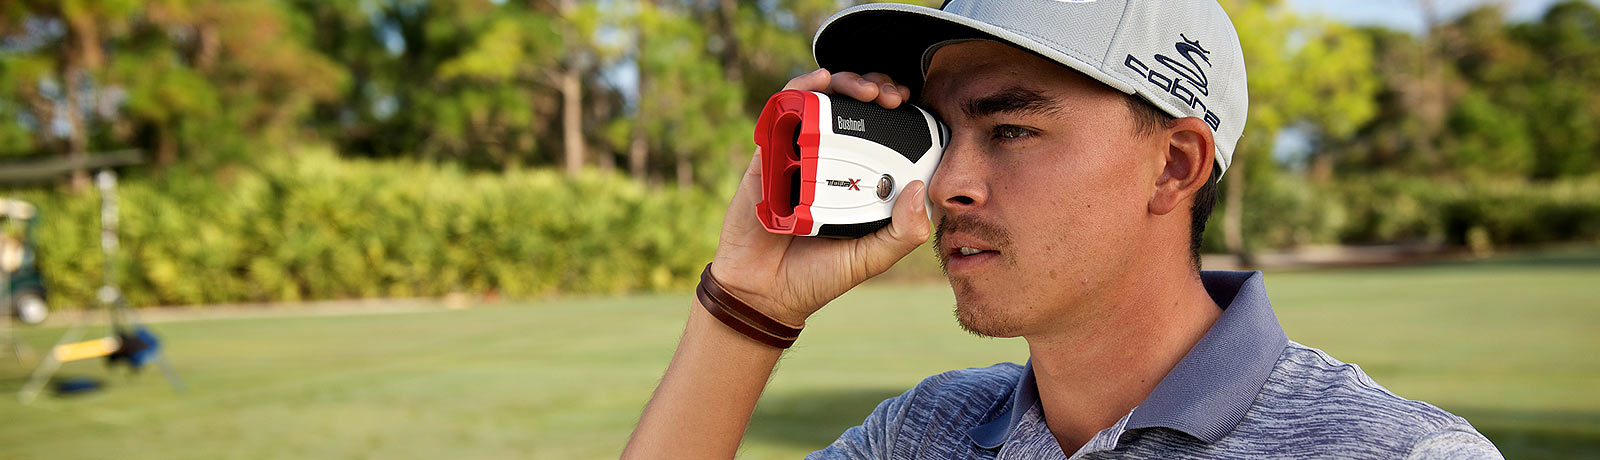 Rickie Fowler using a Bushnell Golf Tour V4 Shift Laser Rangefinder.